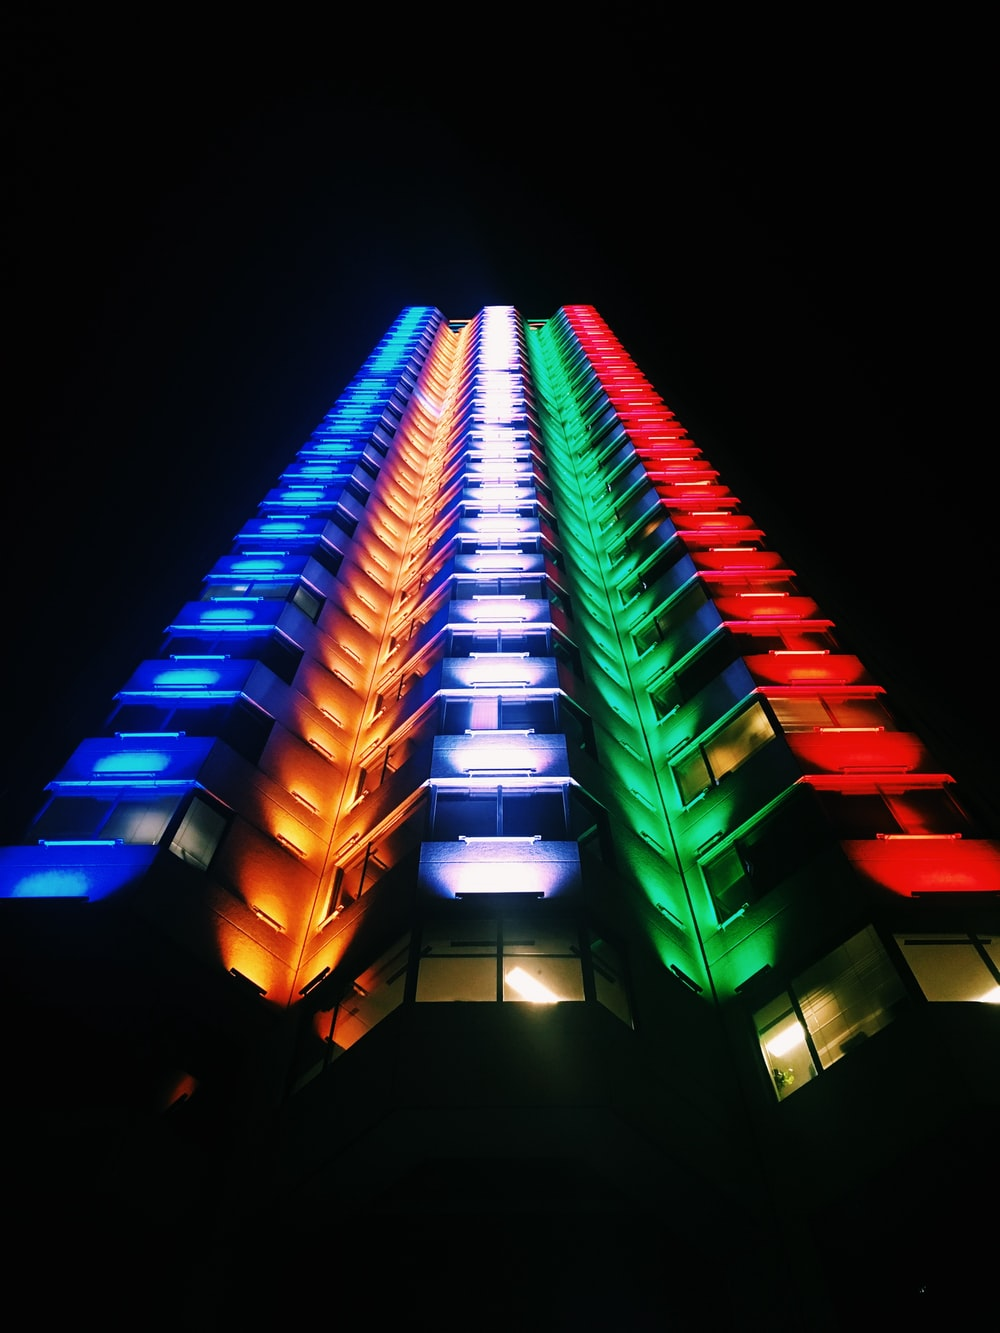 low-angle photography of multicolored high-rise building